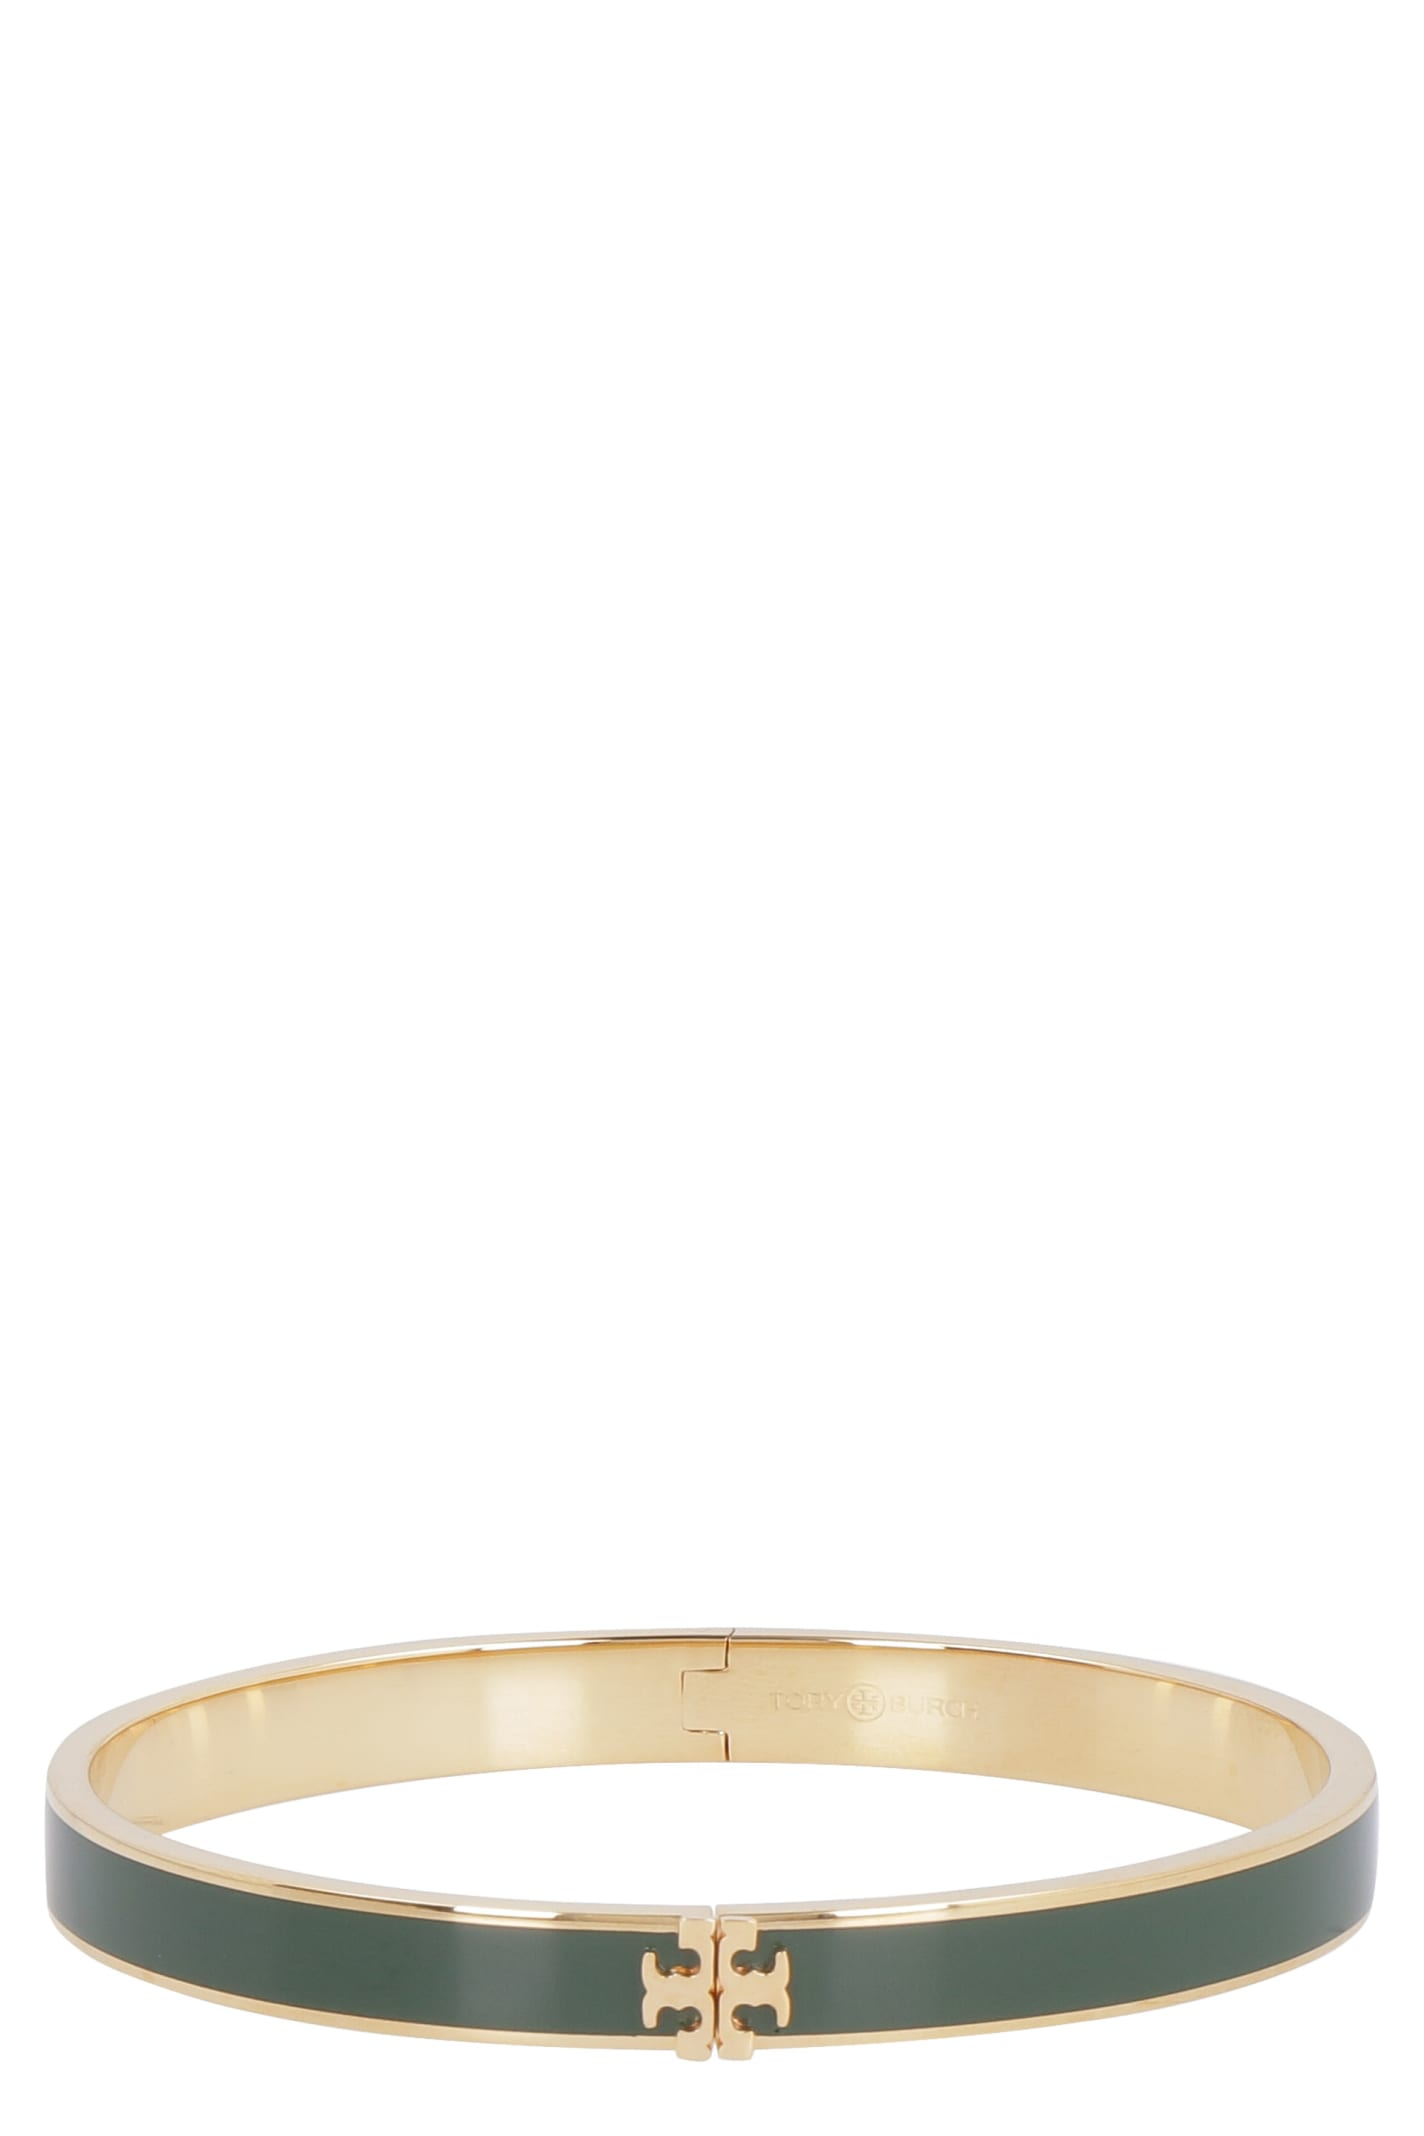 Tory Burch Kira Enameled Brass Bracelet